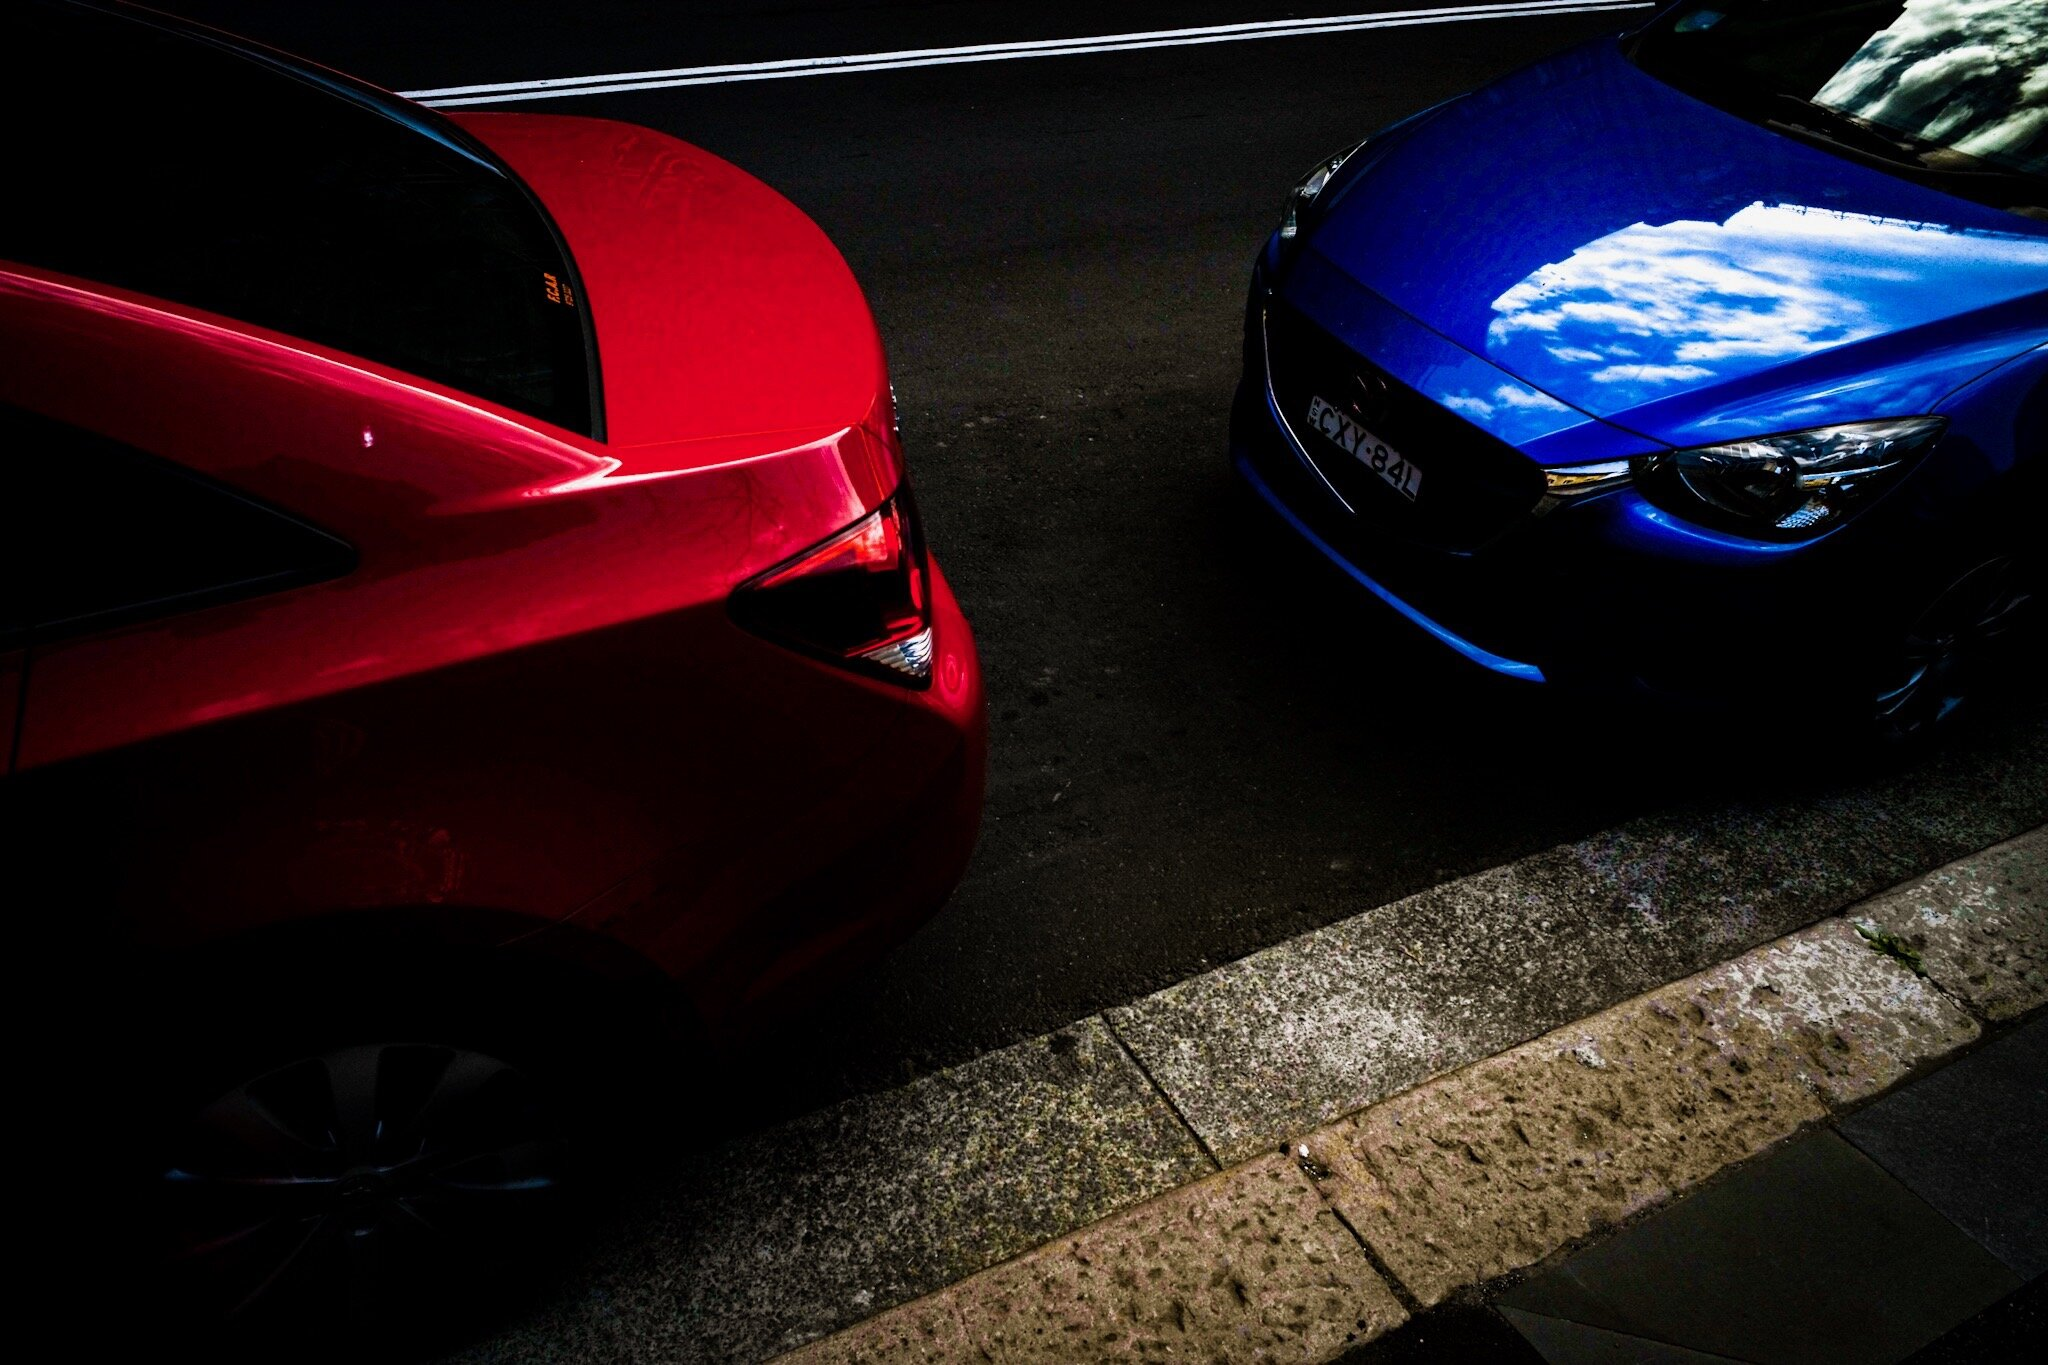 Red and Blue Cars - 1.jpg